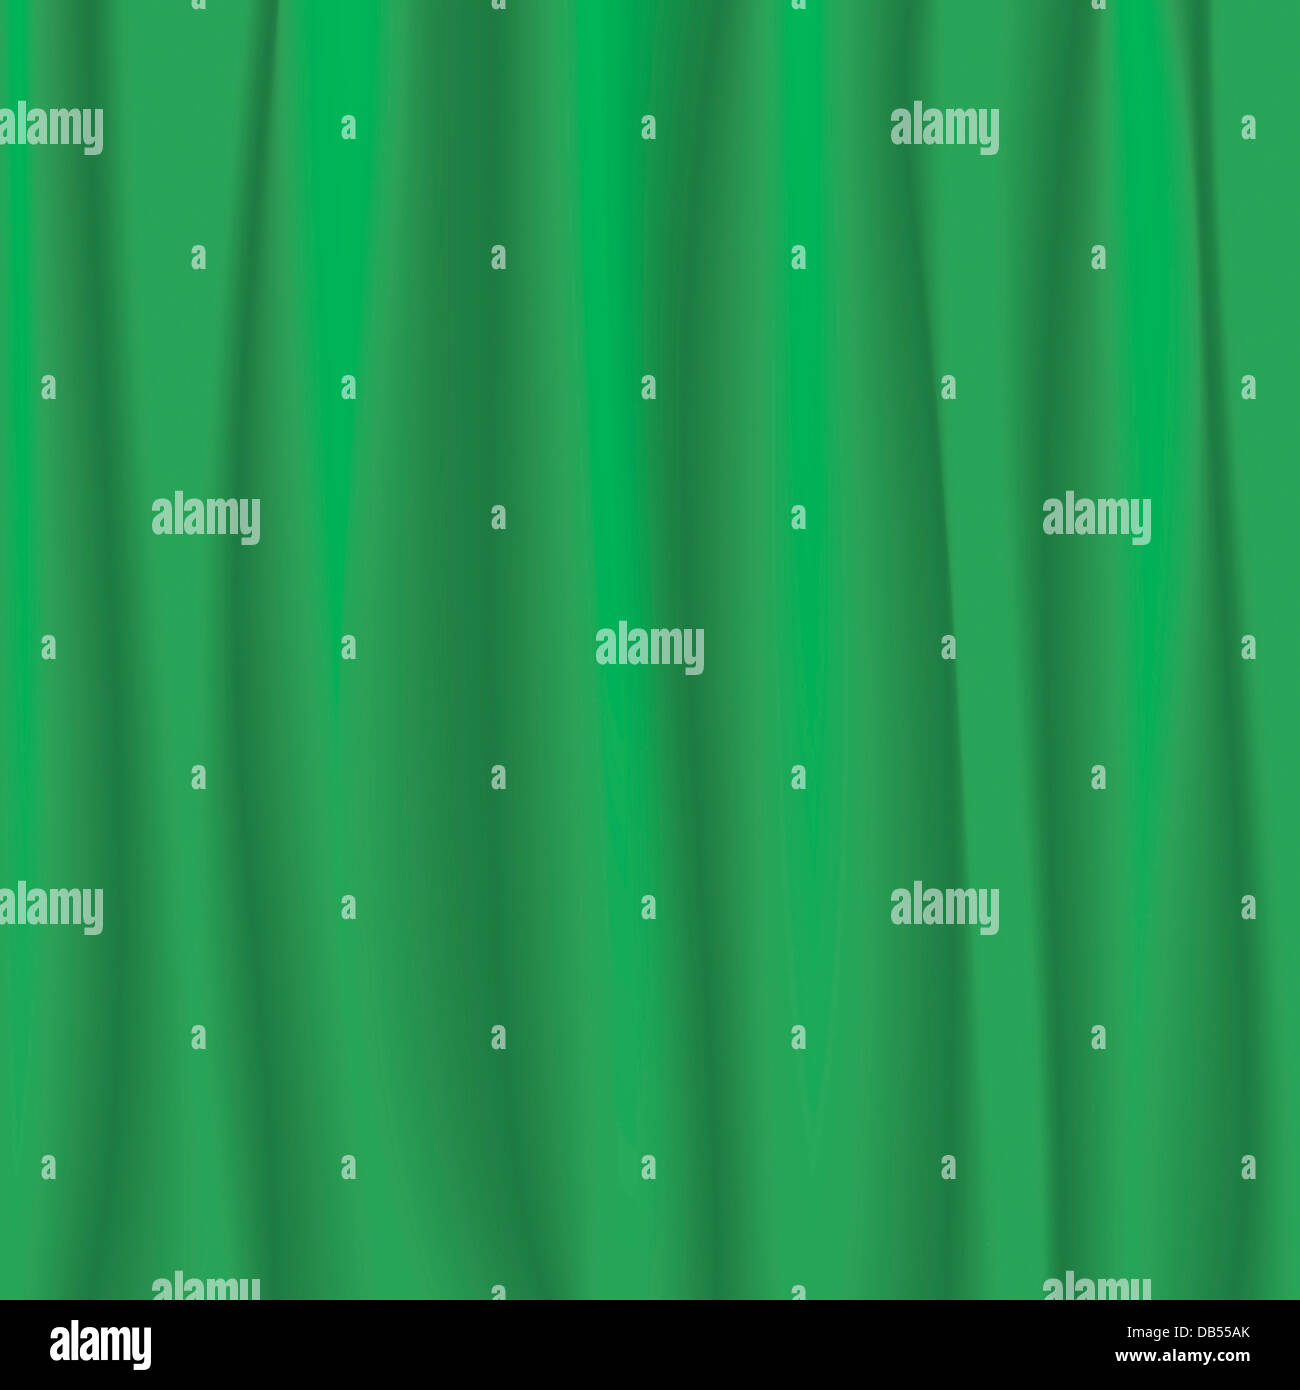 Green stage curtains - Stock Photo Vector Illustration Of A Green Stage Curtain